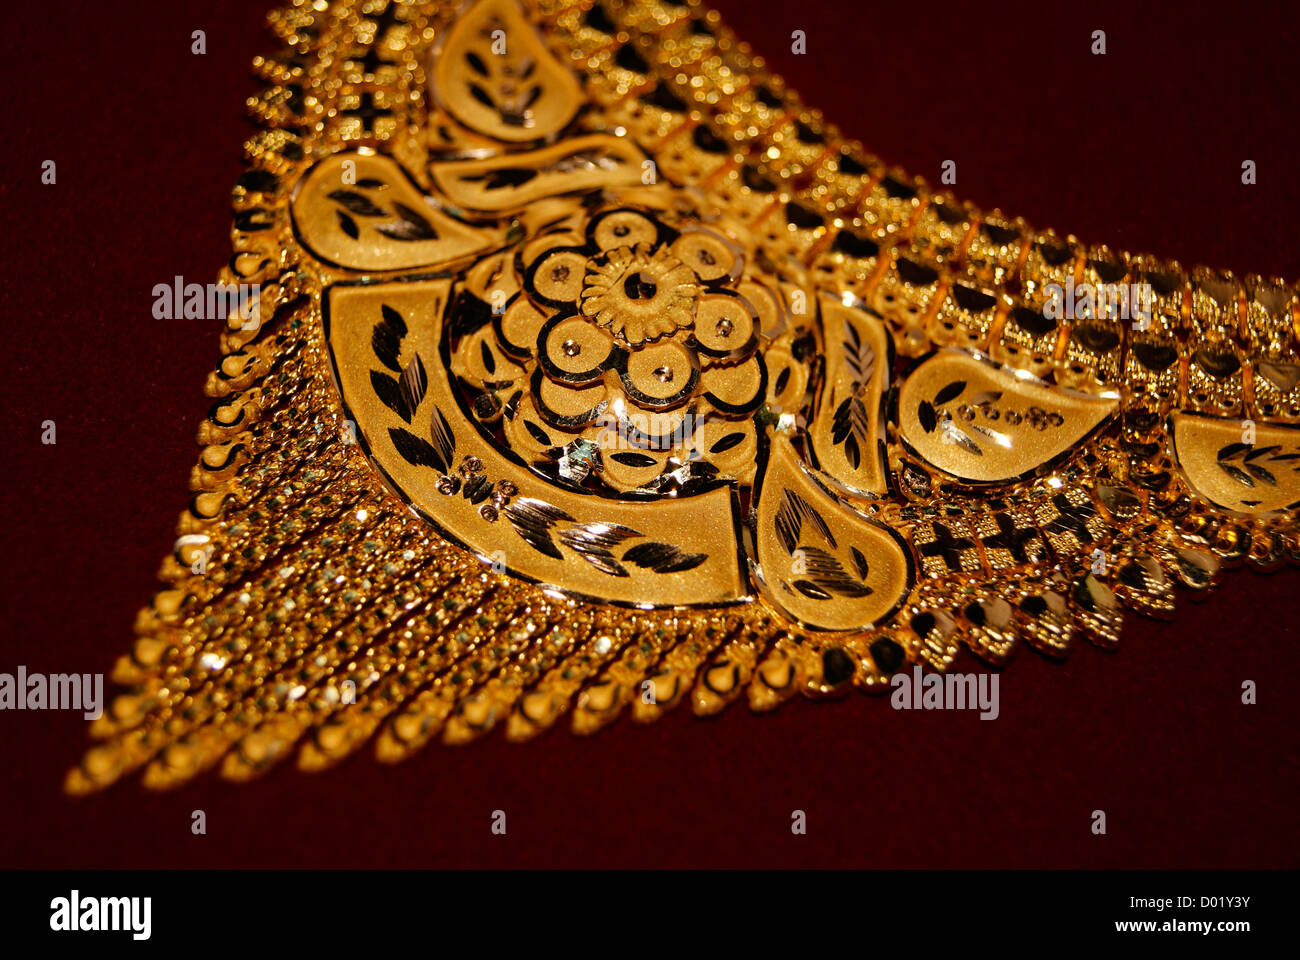 Gold jewellery Ornaments Golden Necklace Closeup View of Jewel Designs - Stock Image